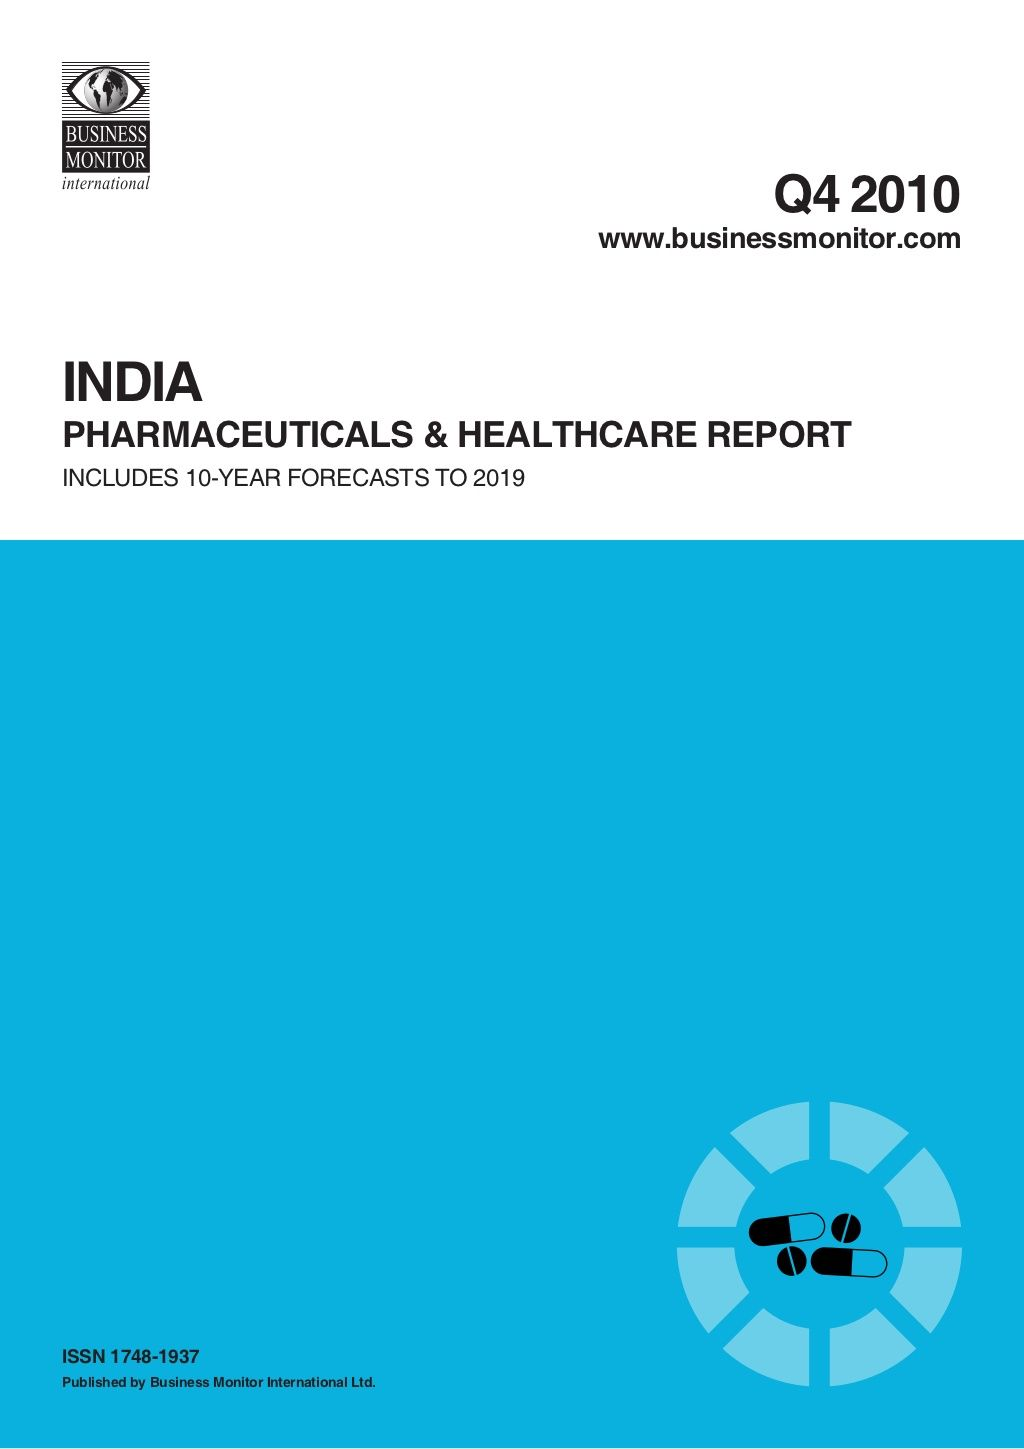 indian-pharma-healthcare-report-10-year-forecast-2019 by Anup Soans